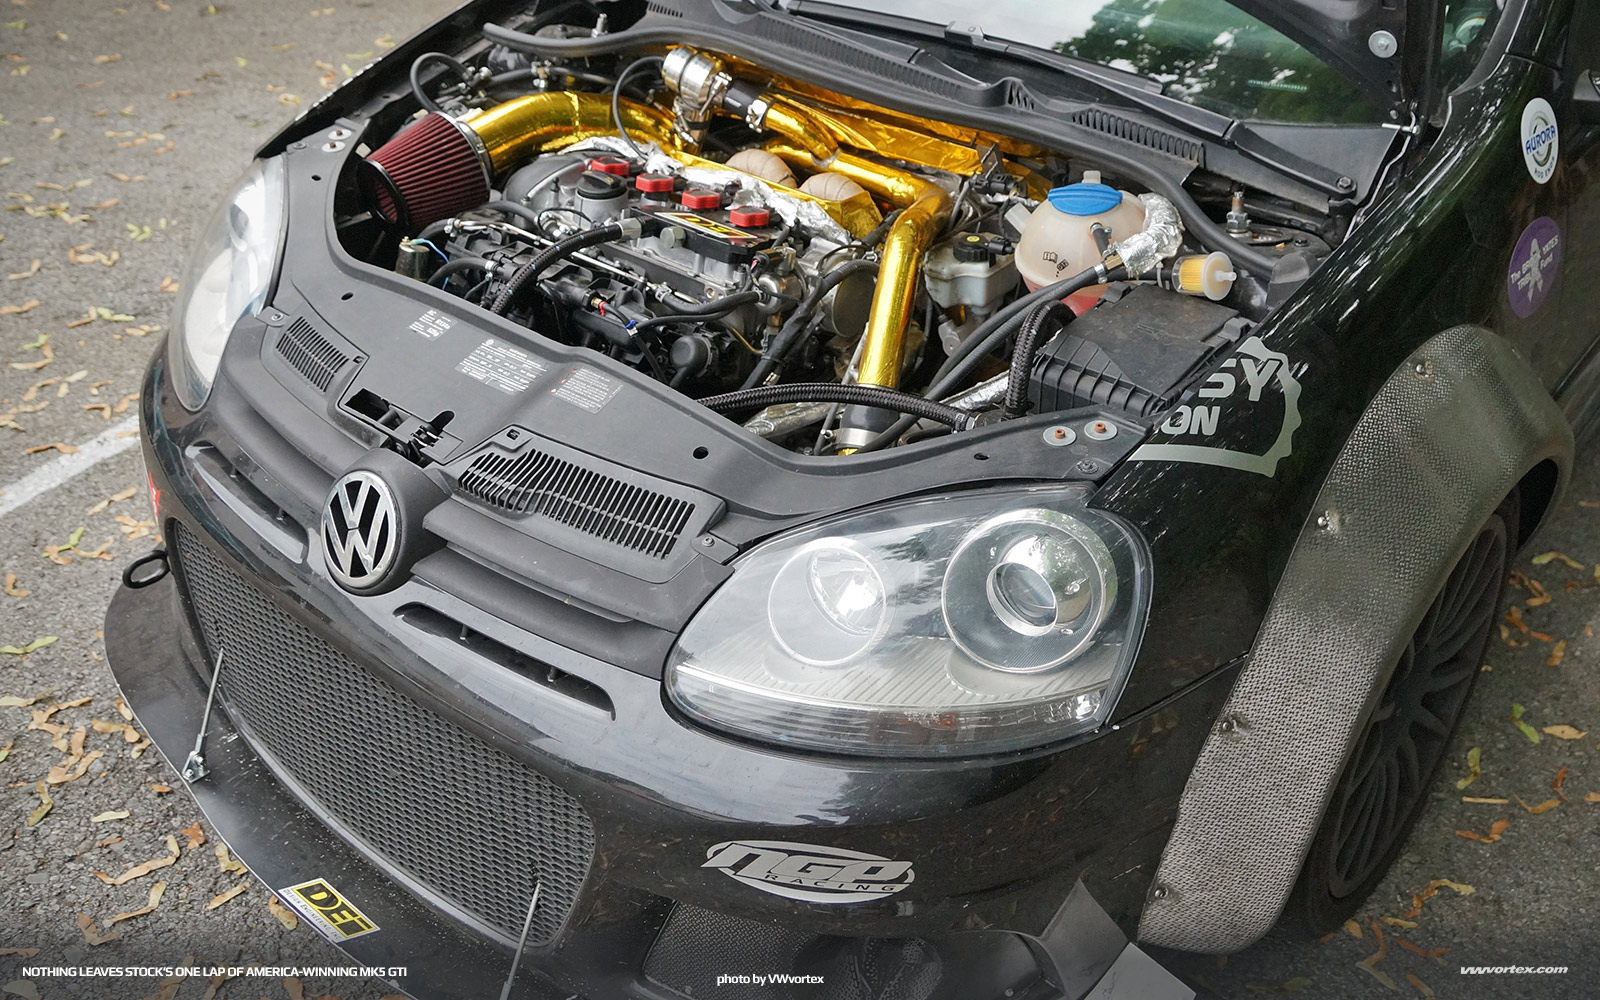 Nothing-Leaves-Stock-One-Lap-Winning-Volkswagen-GTI-380